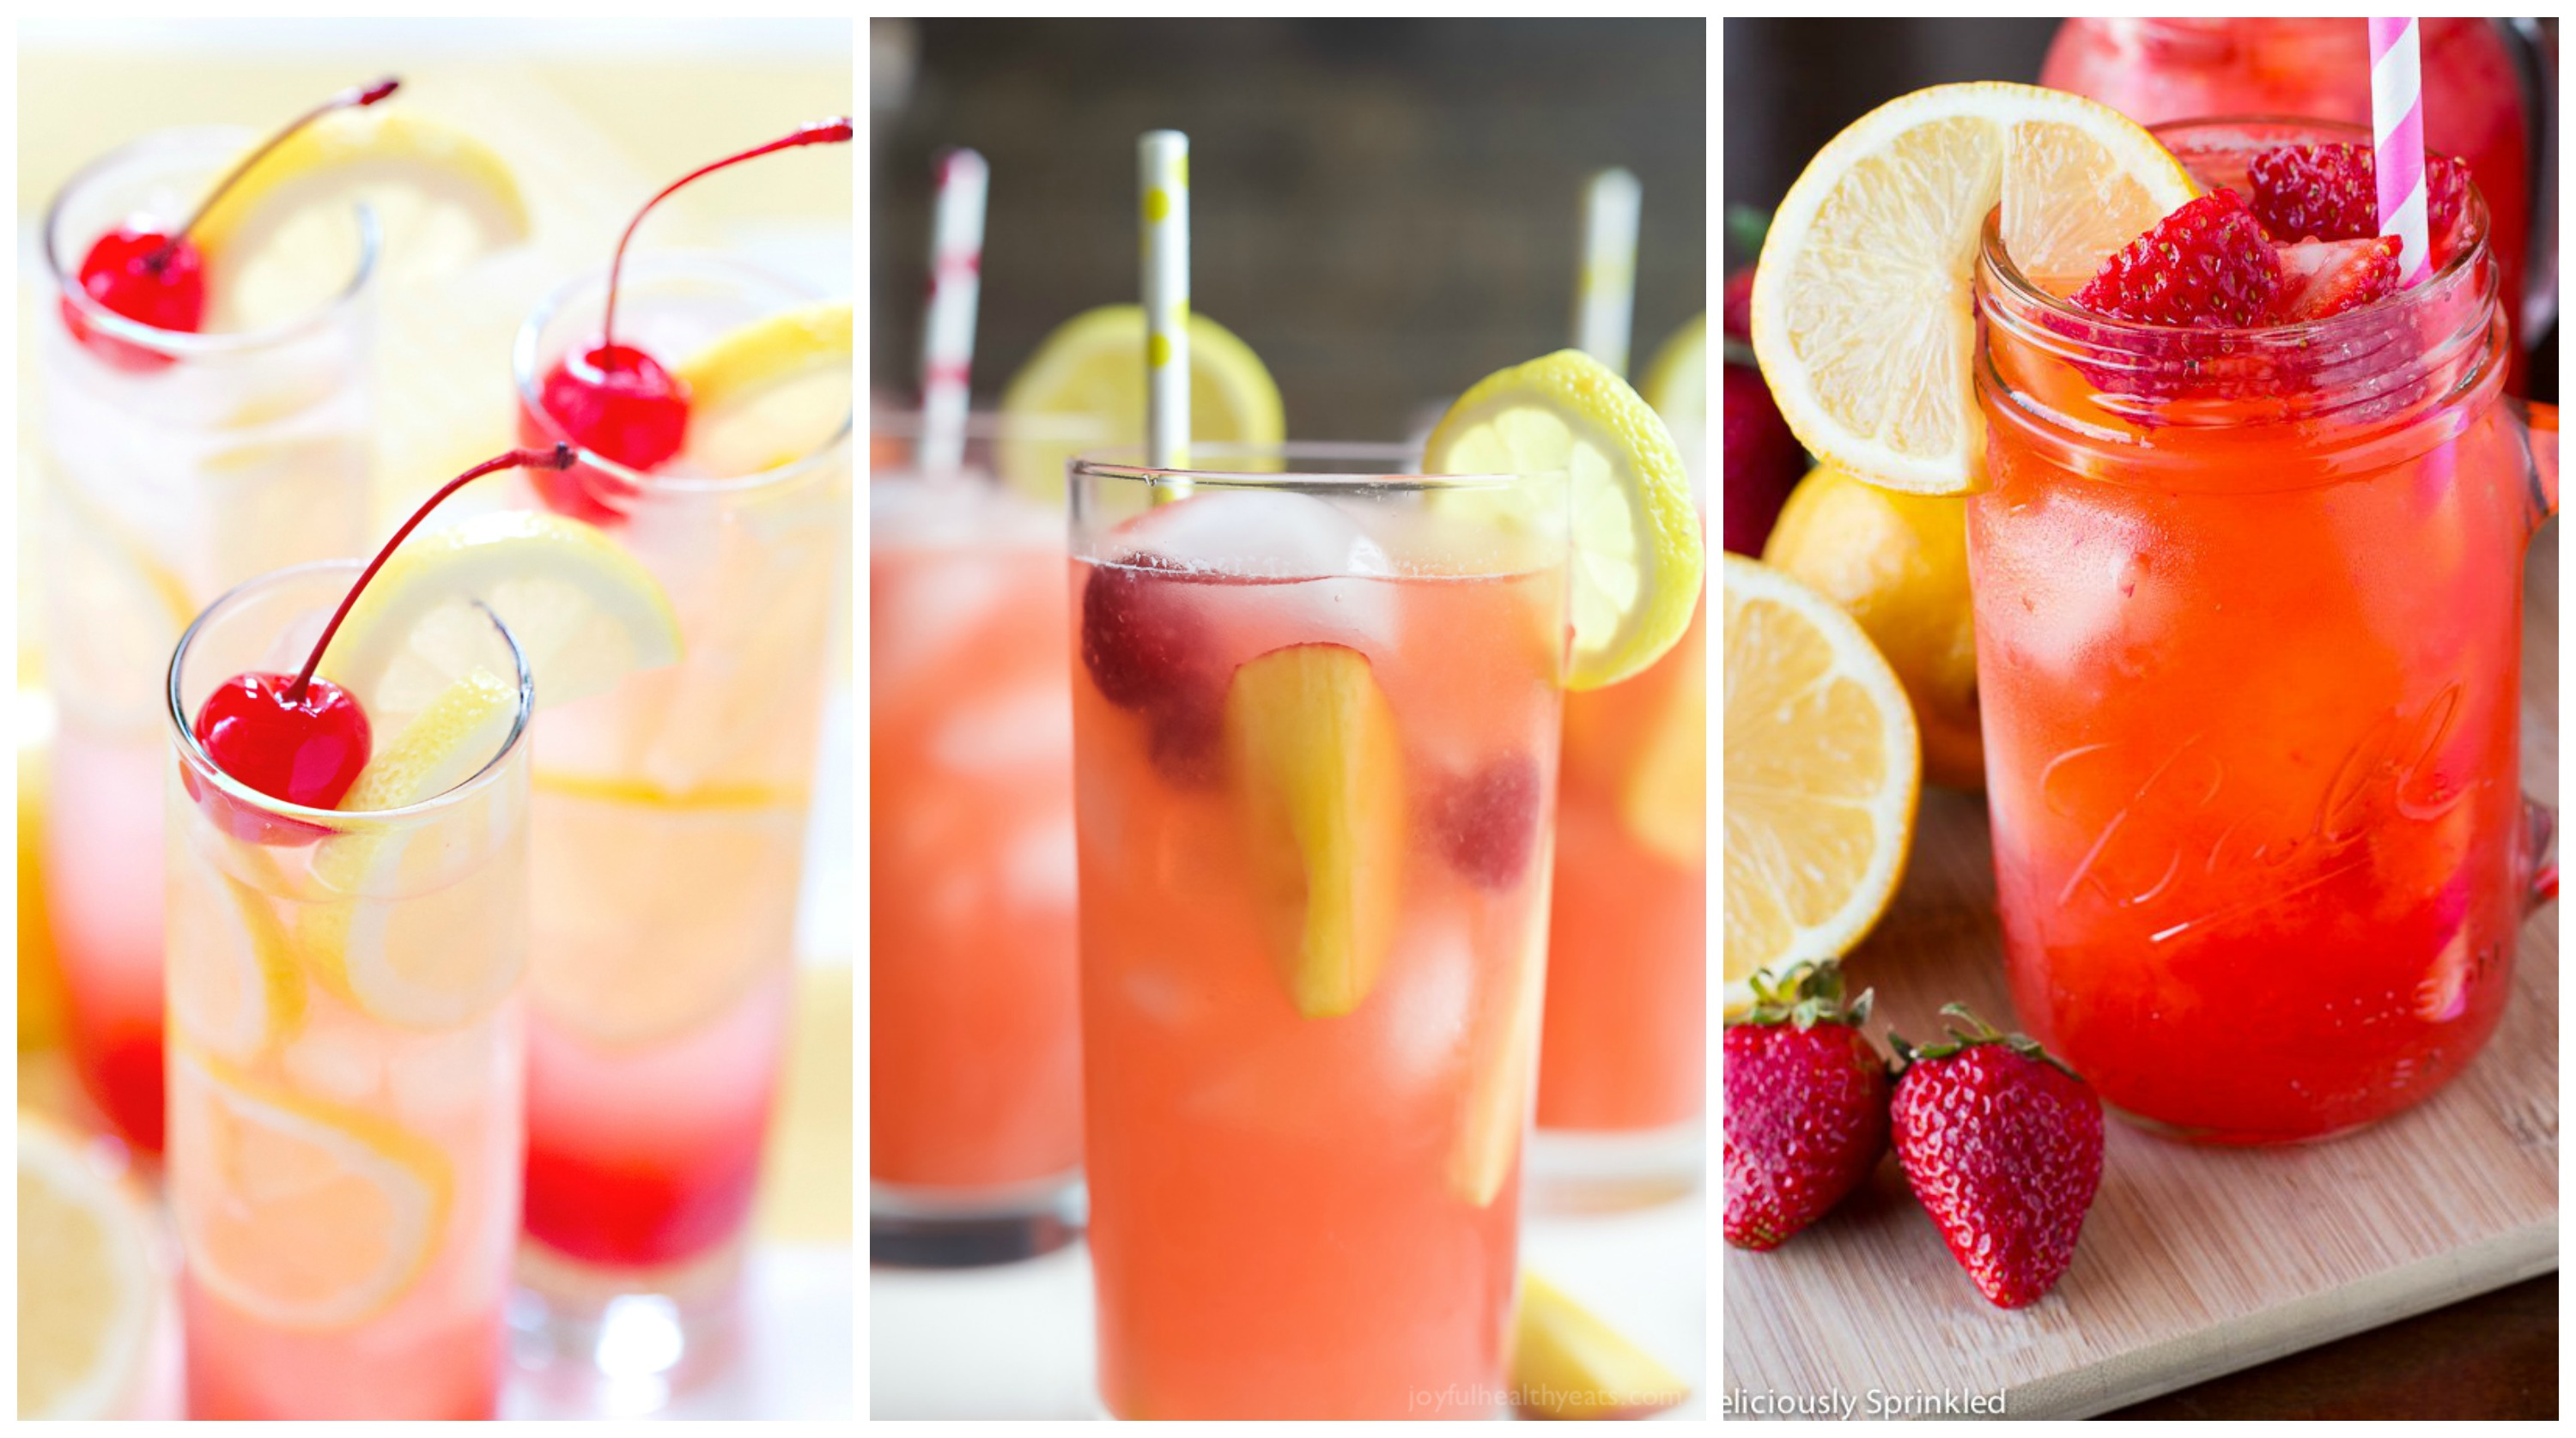 summertime lemonade recipes, lemonade recipes, homemade lemonade recipe, lemonade recipe, homemade lemonade recipes, easy lemonade recipe, make your own summer lemonade